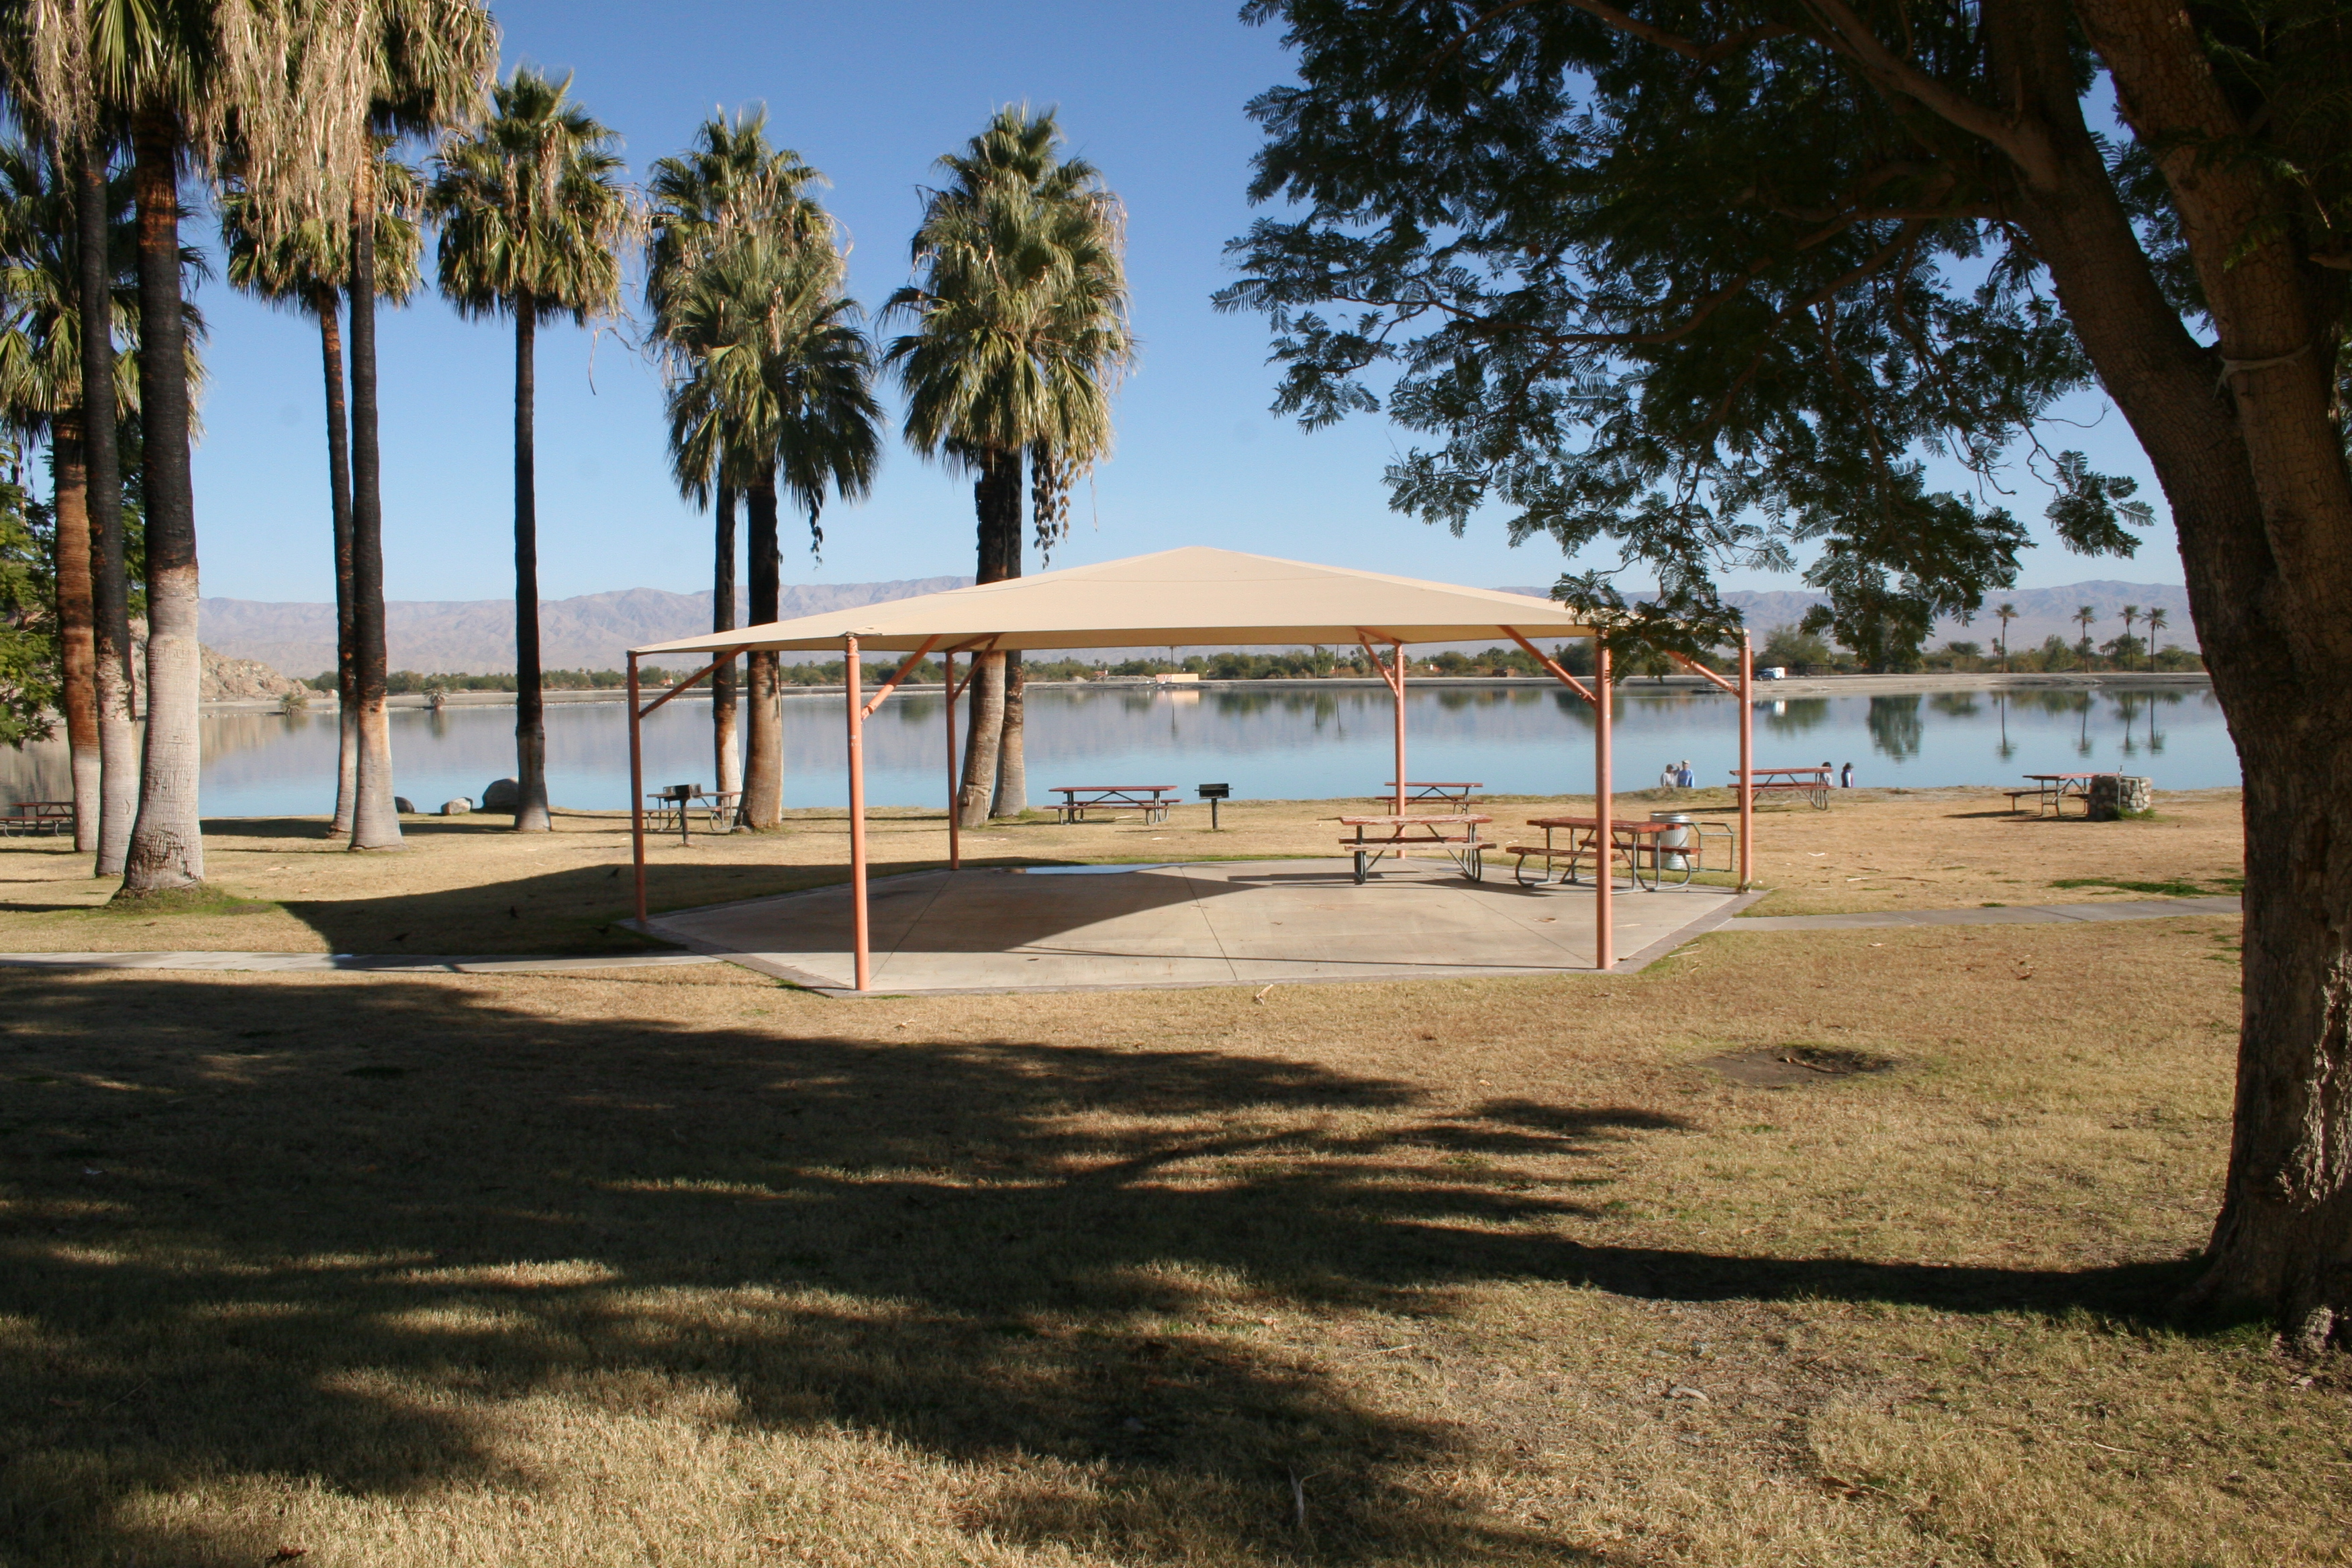 Picnic shelter at Cahuilla